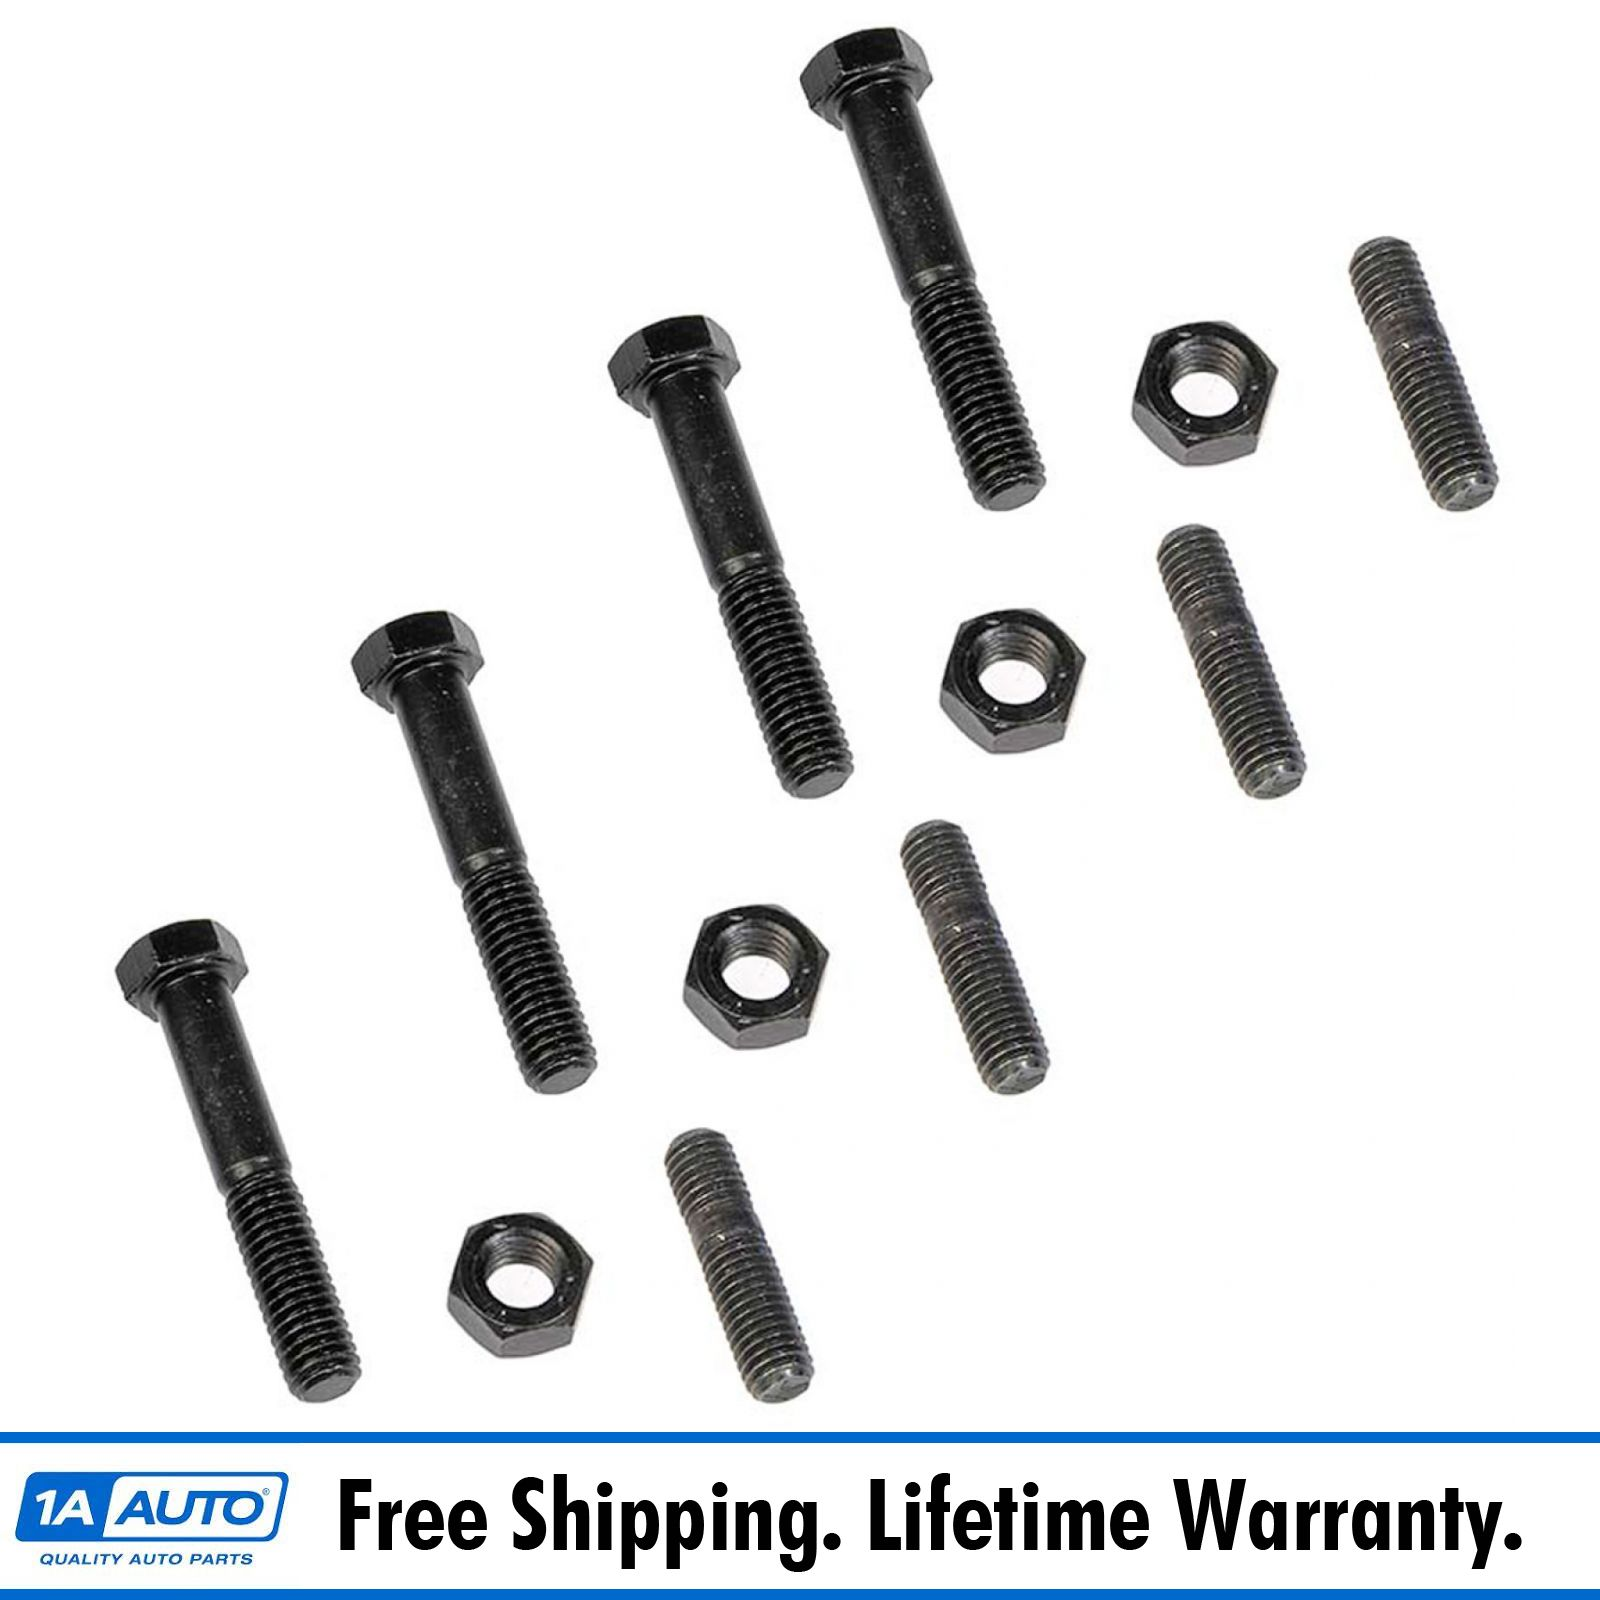 hight resolution of dorman water pump mounting bolt hardware set for chevy pontiac pickup truck